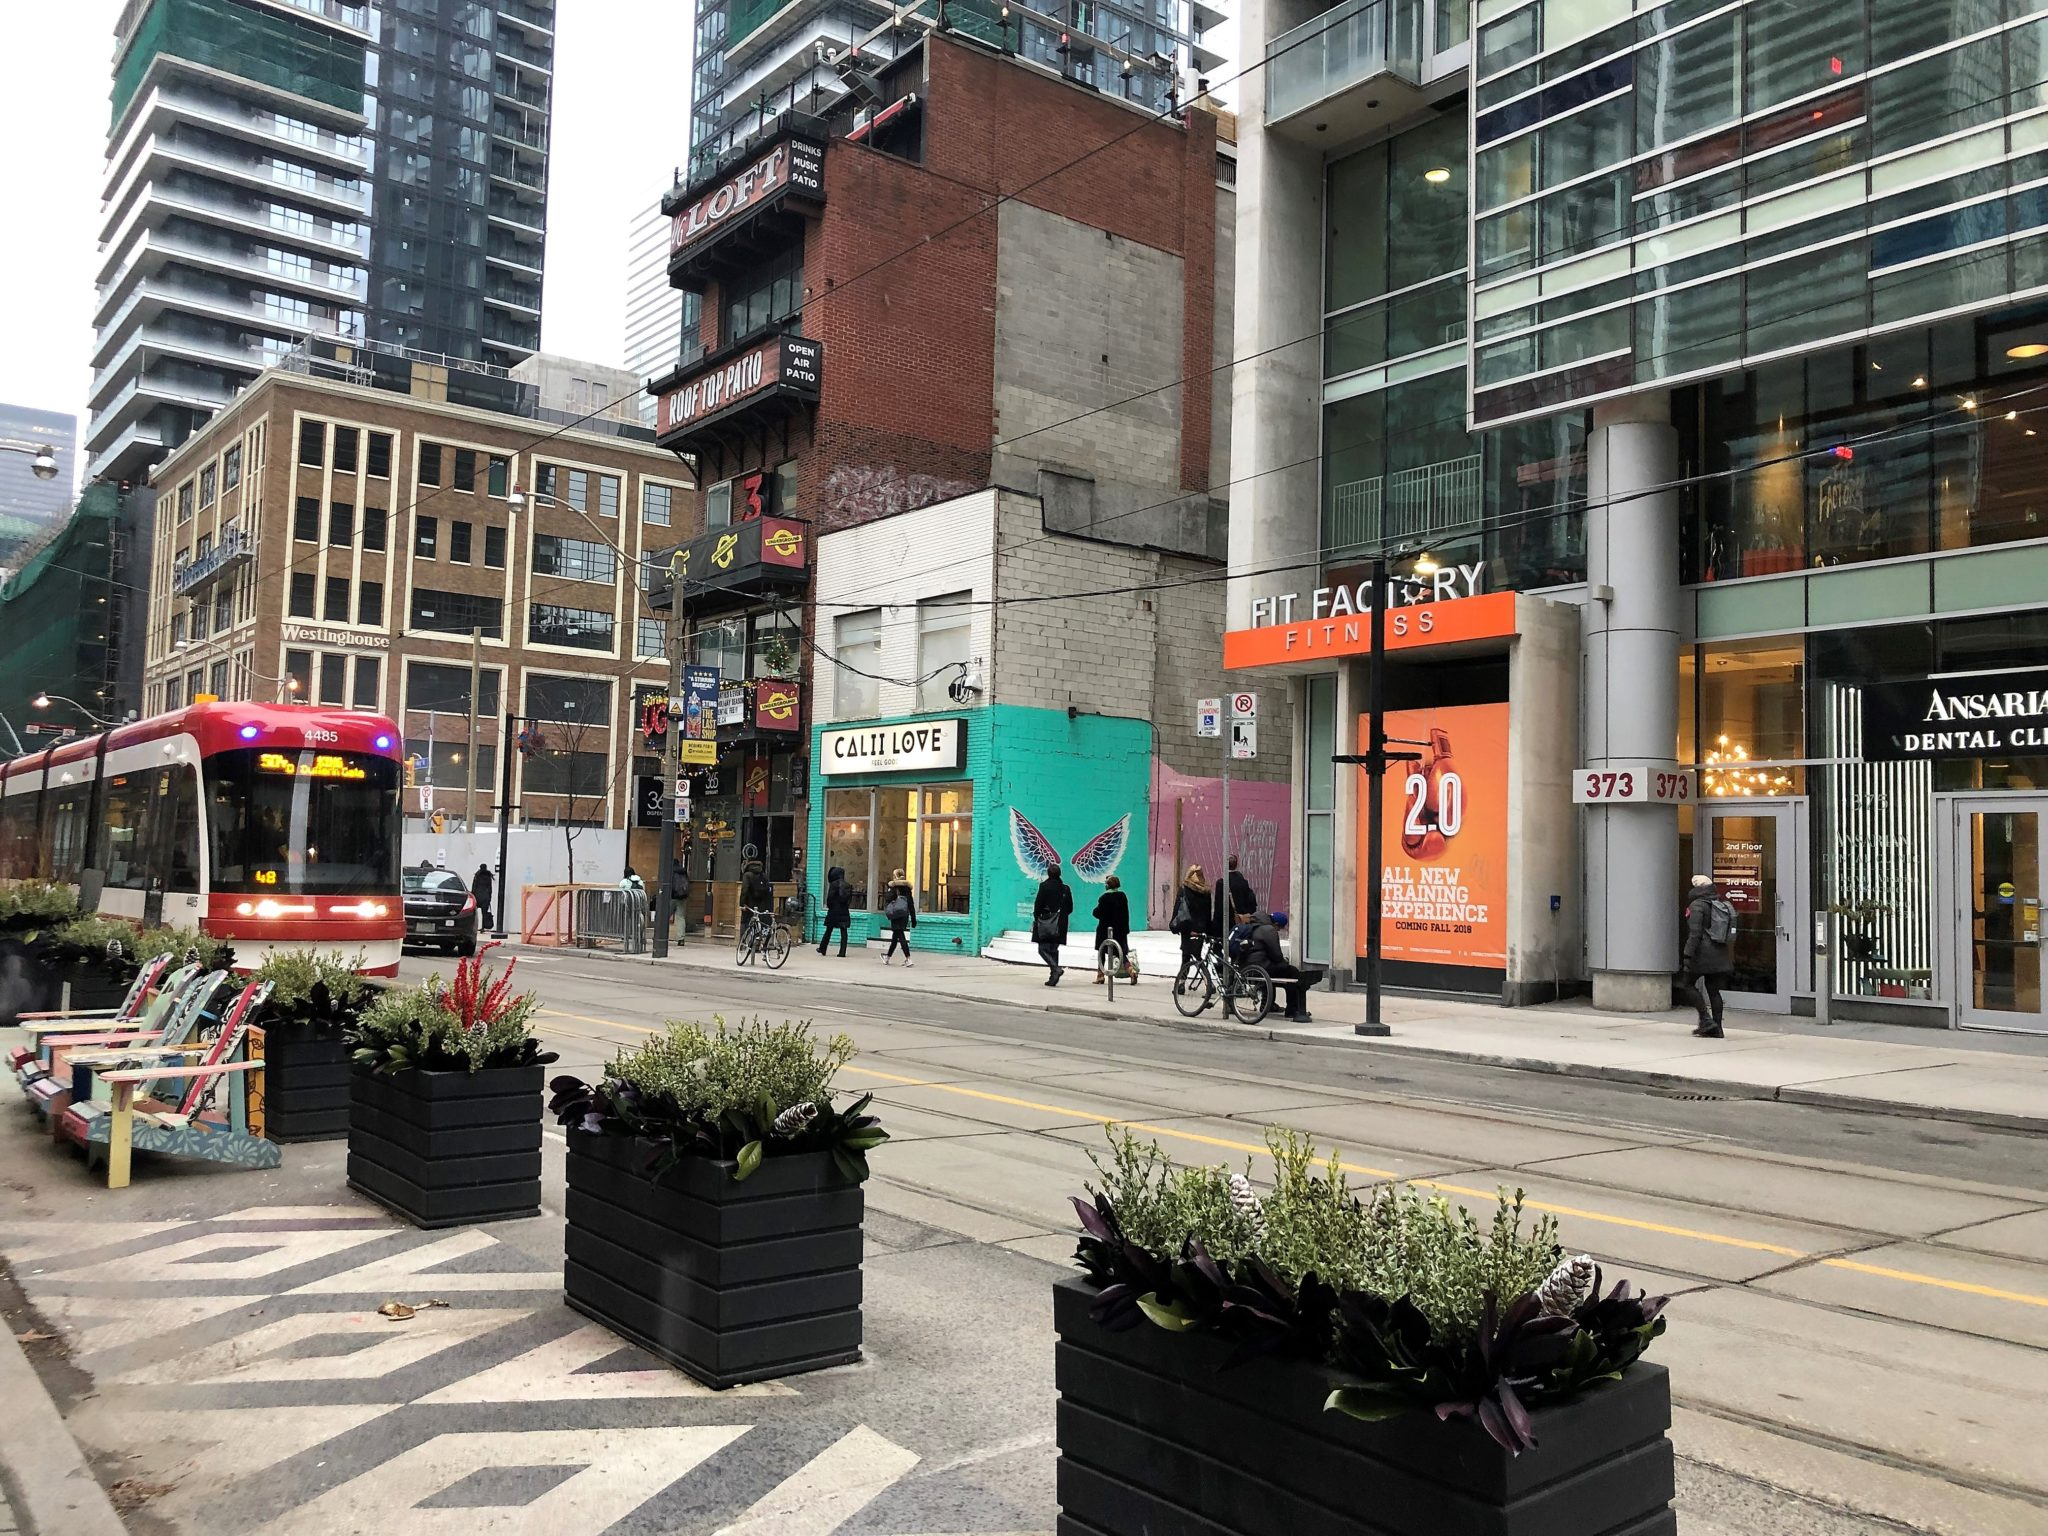 King West street view